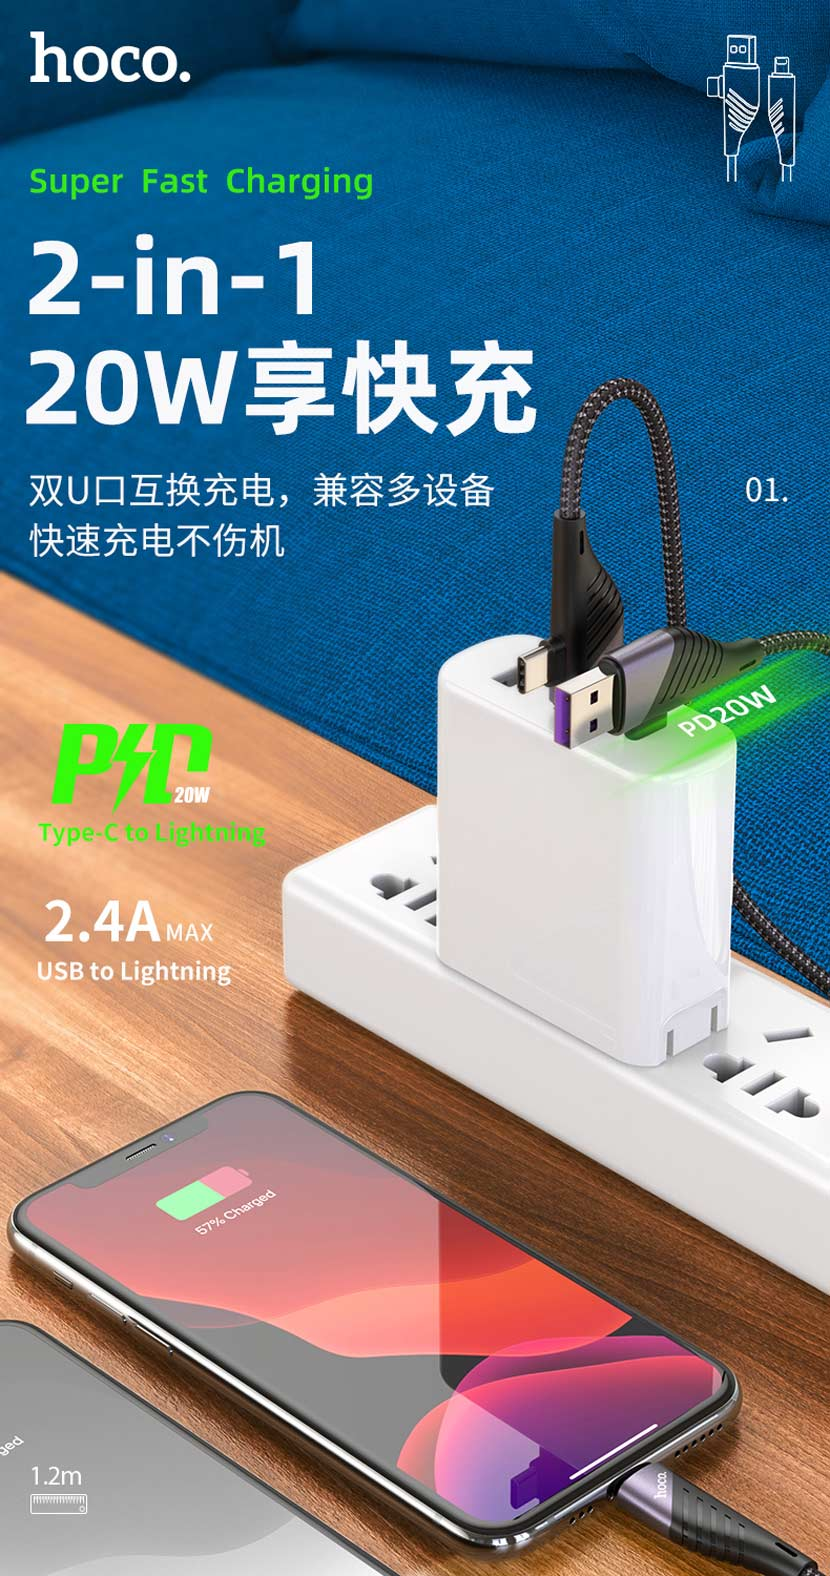 hoco news u95 freeway pd charging data cable 2in1 usb type c to lightning cn